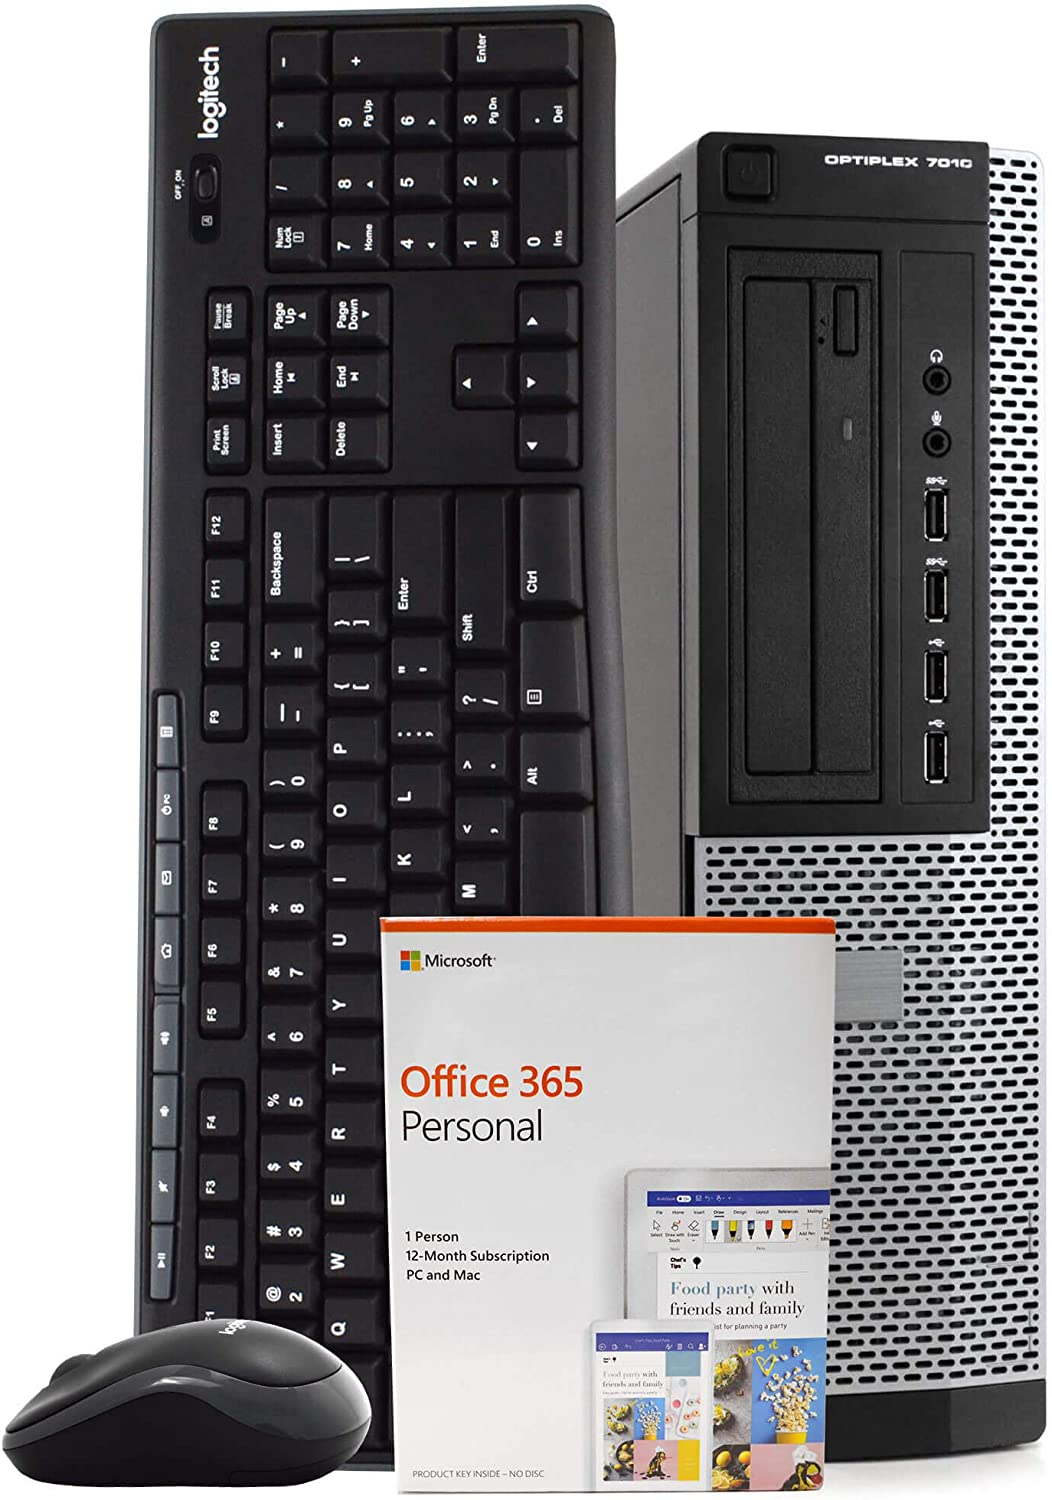 Dell OptiPlex 7010 Desktop Computer PC, Intel i5-3470 3.2GHz, 16GB RAM, 2TB HDD, Windows 10 Pro, Microsoft Office 365 Personal, New 16GB Flash Drive, Wireless Keyboard & Mouse, DVD, Wi-Fi (Renewed)